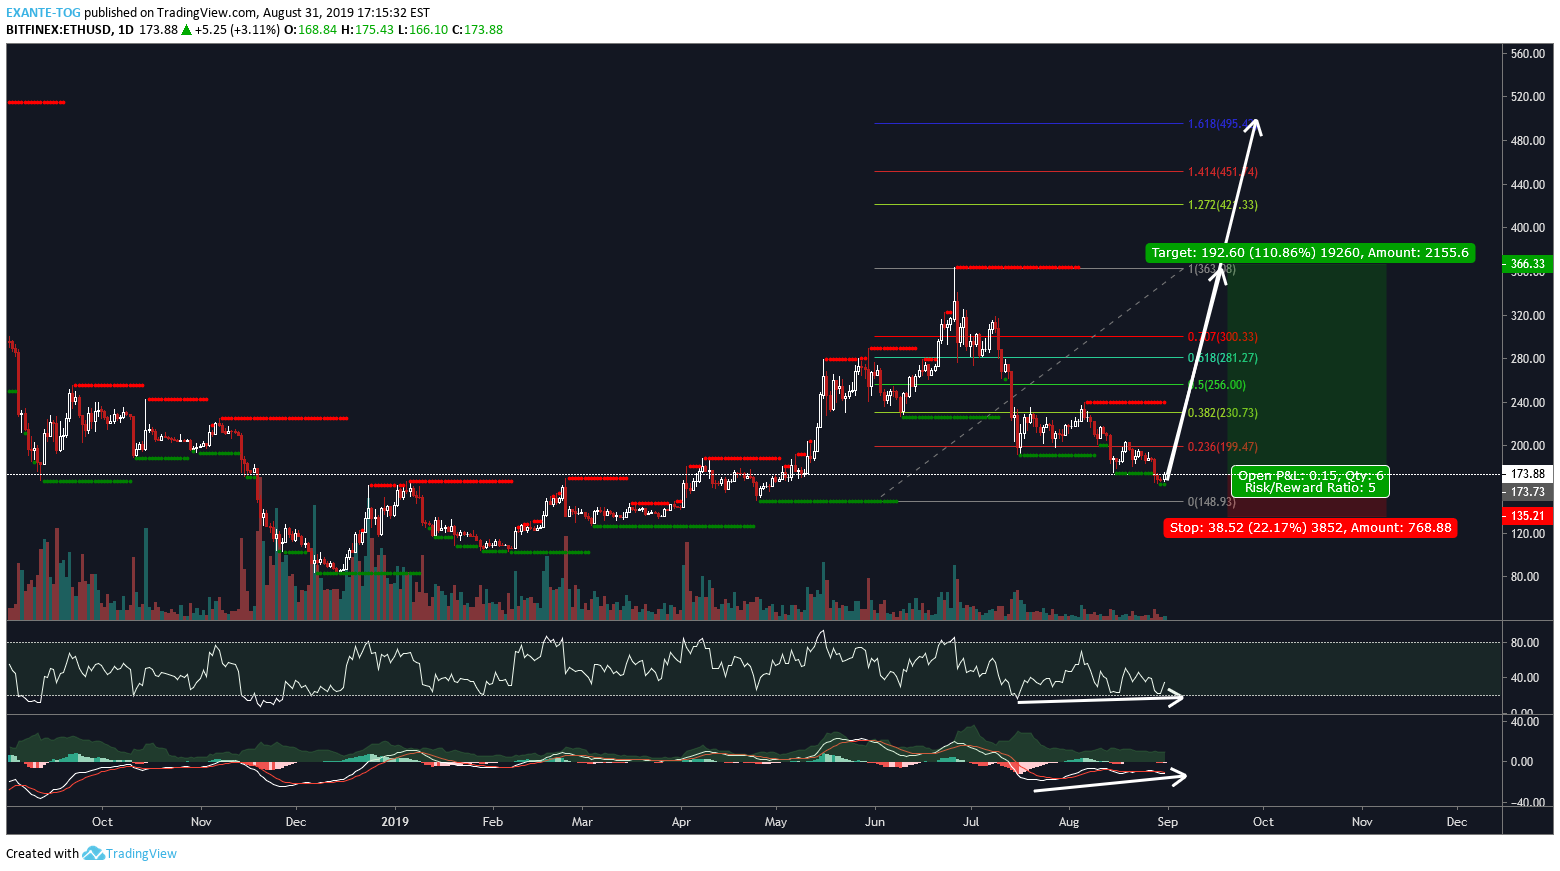 ETH: Ethereum ETH/USD for BITFINEX:ETHUSD by EXANTE-TOG